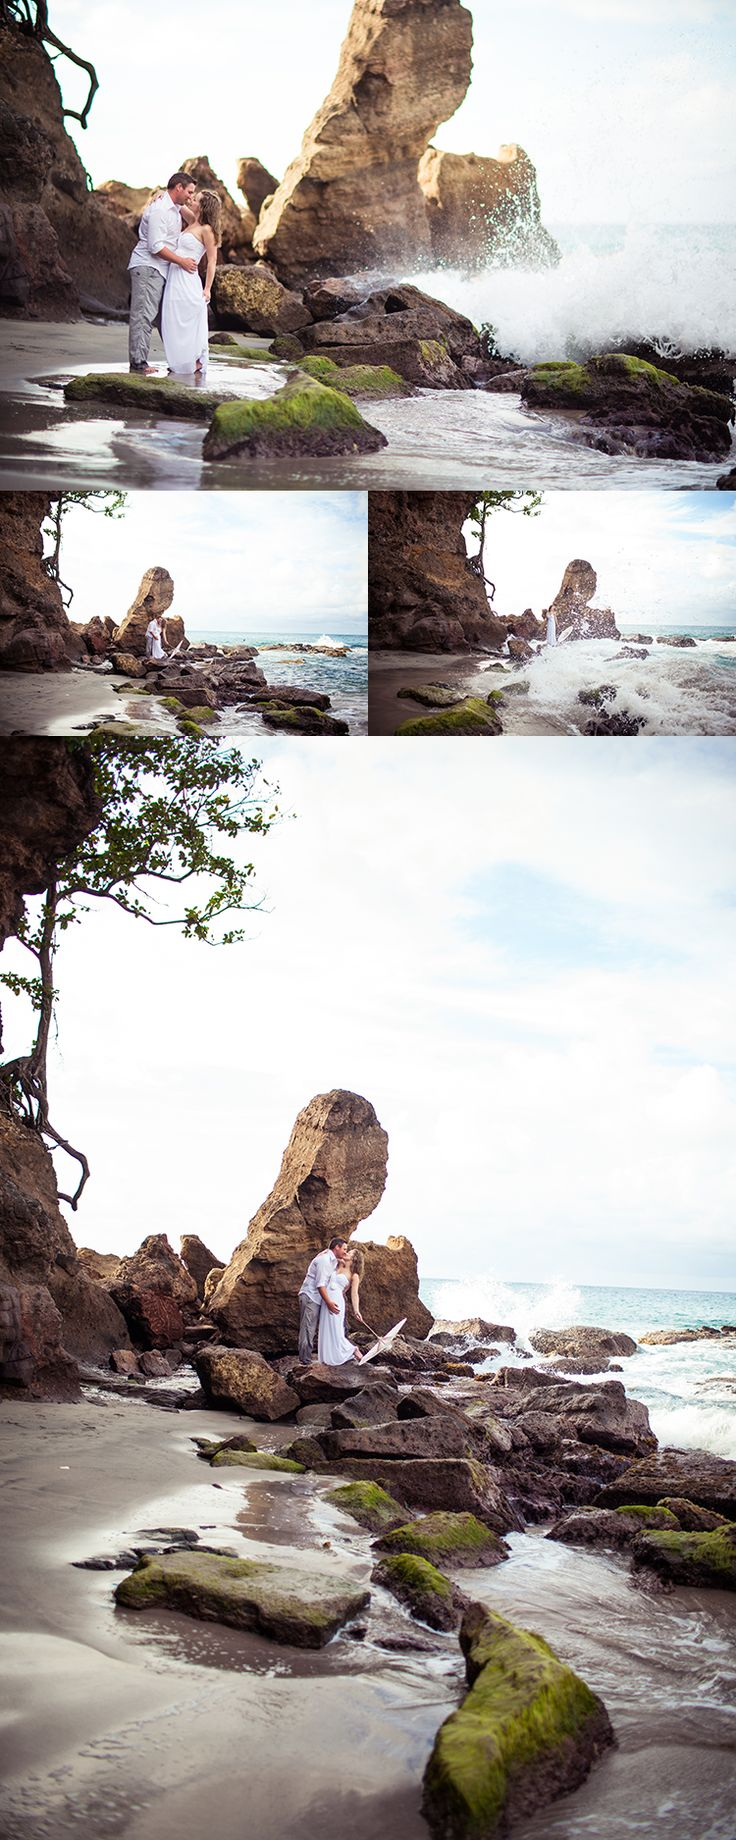 Just For You #Photography, #StLucia #Wedding Photography  | Honeymoons to the Caribbean http://www.pinterest.com/FLDesignerGuide/honeymoons-to-the-caribbean/